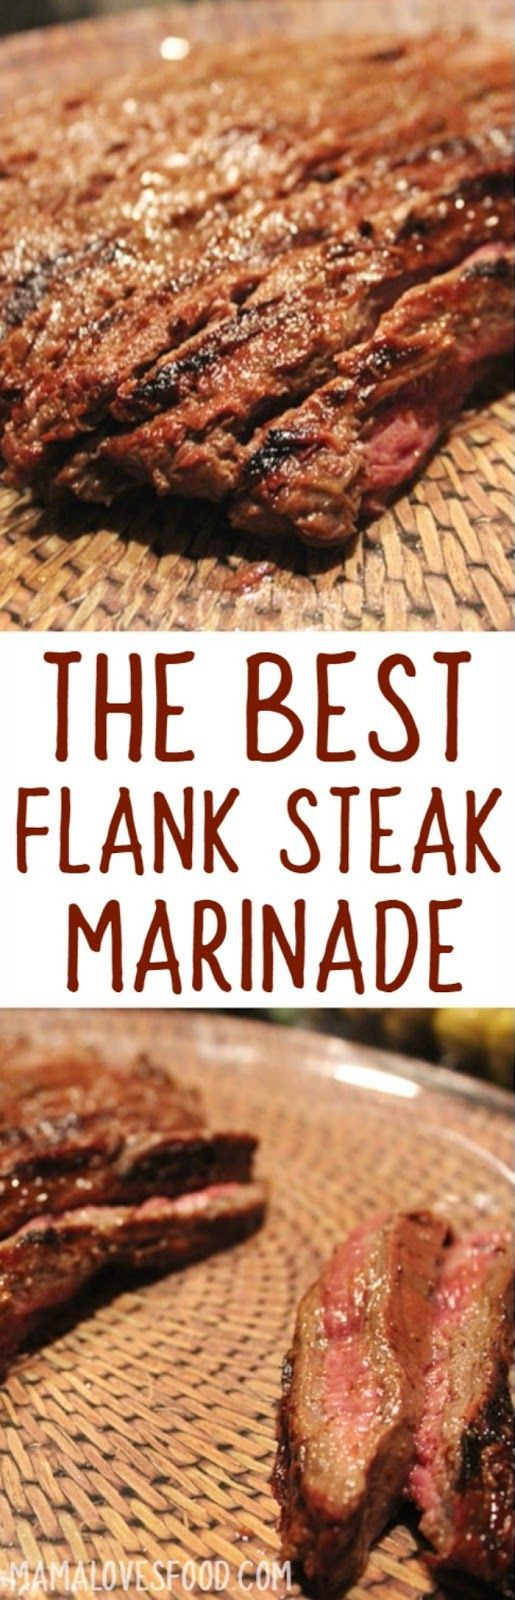 We made a big batch and saved some in the freezer! The Best Flank Steak Marinade Recipe